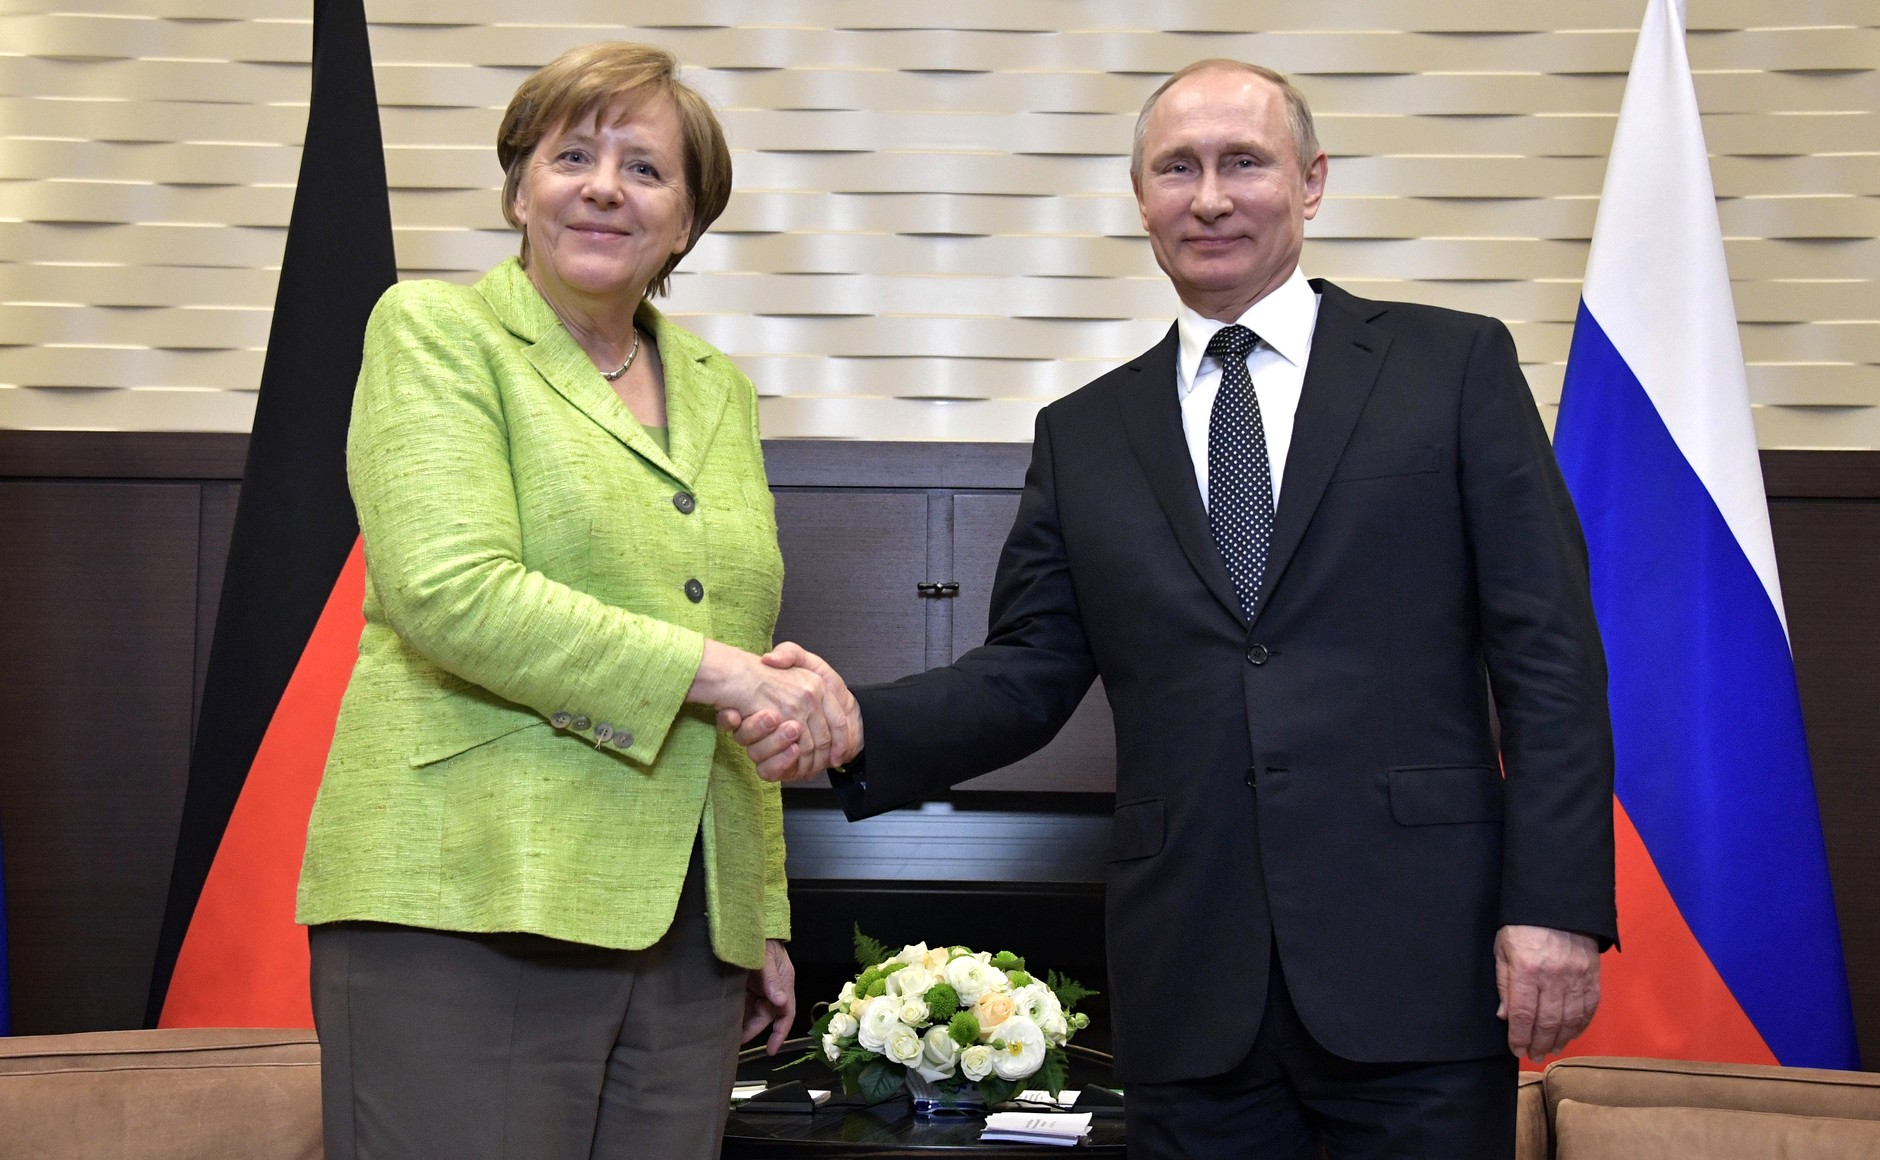 German Chancellor Angela Merkel meets with Russian President Vladimir Putin in Sochi